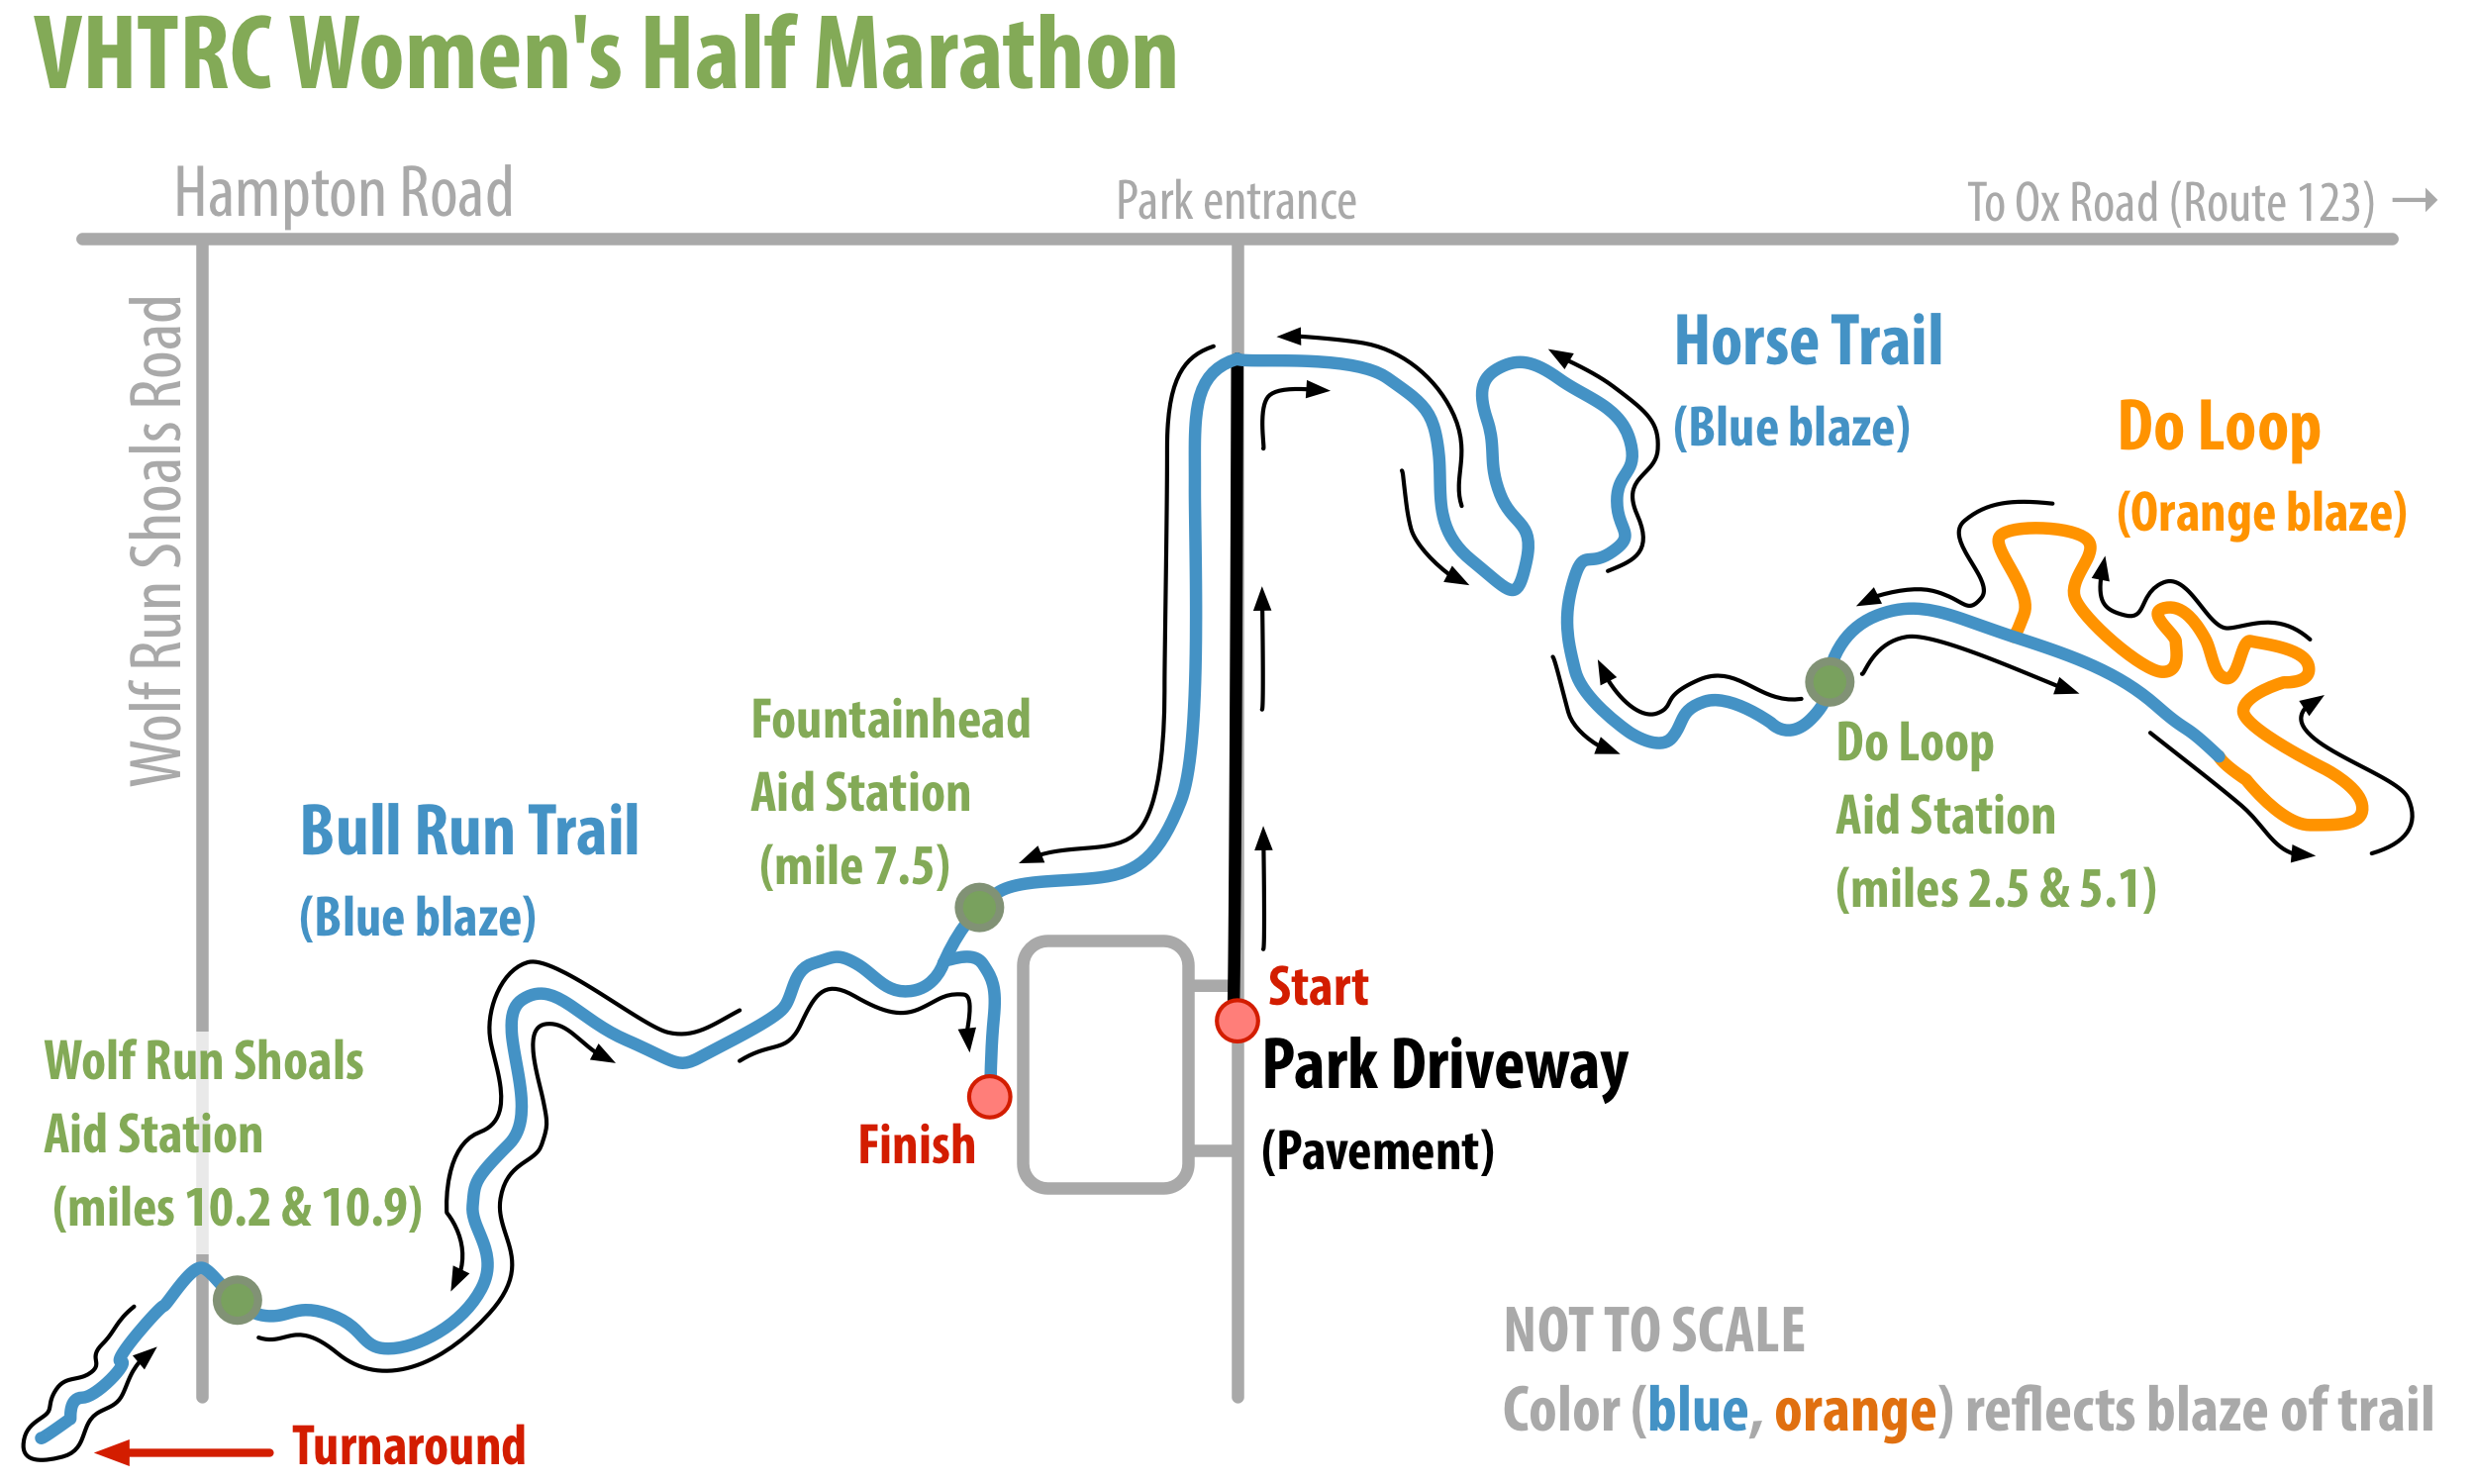 Schematic map of the Women's Half Marathon course